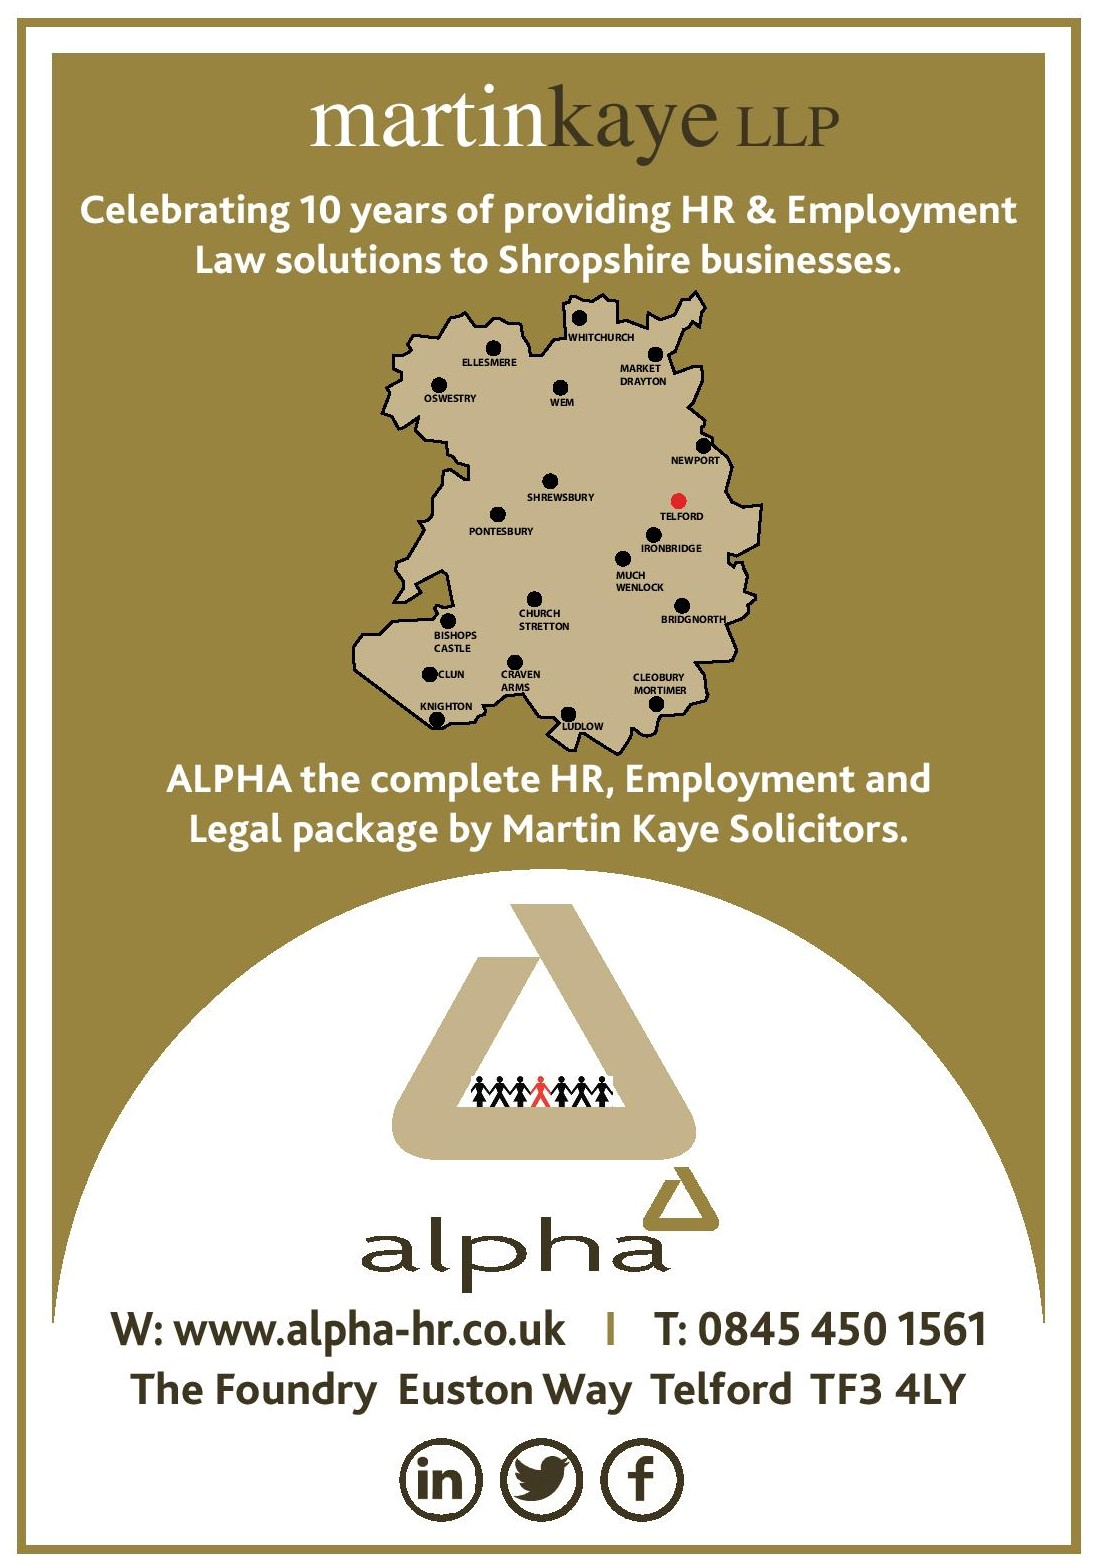 http://www.alpha-hr.co.uk